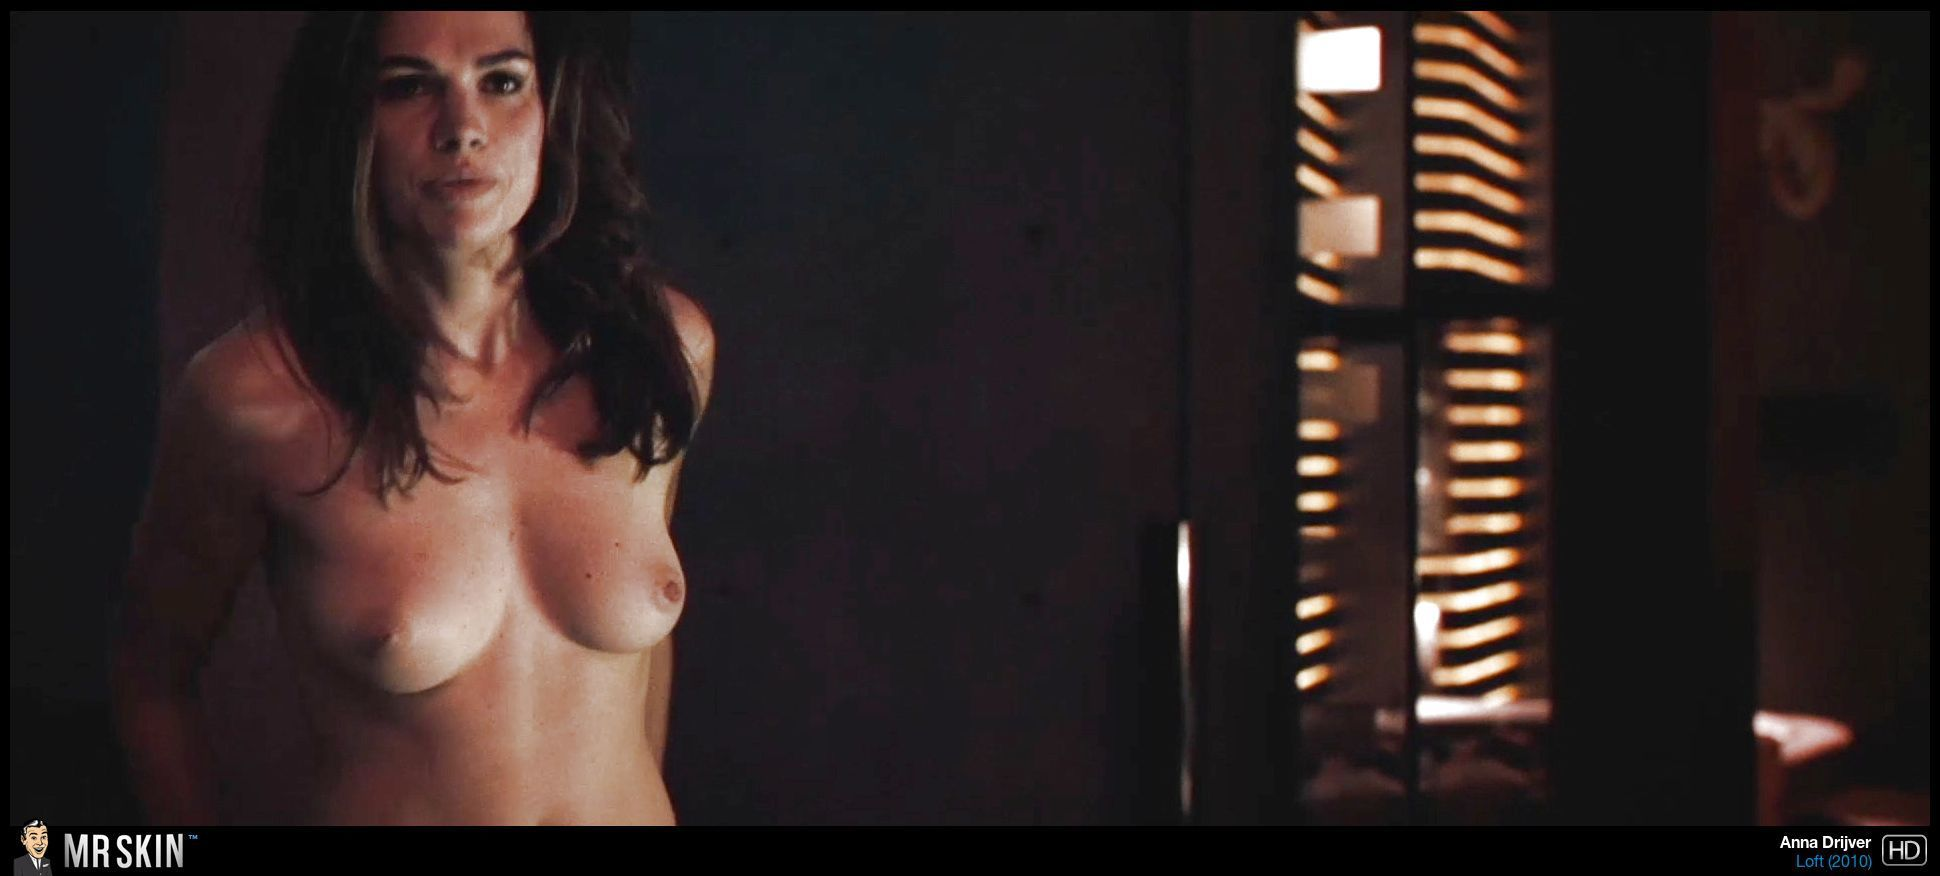 Topless Sallie Harmsen nude (94 foto and video), Ass, Paparazzi, Selfie, braless 2006